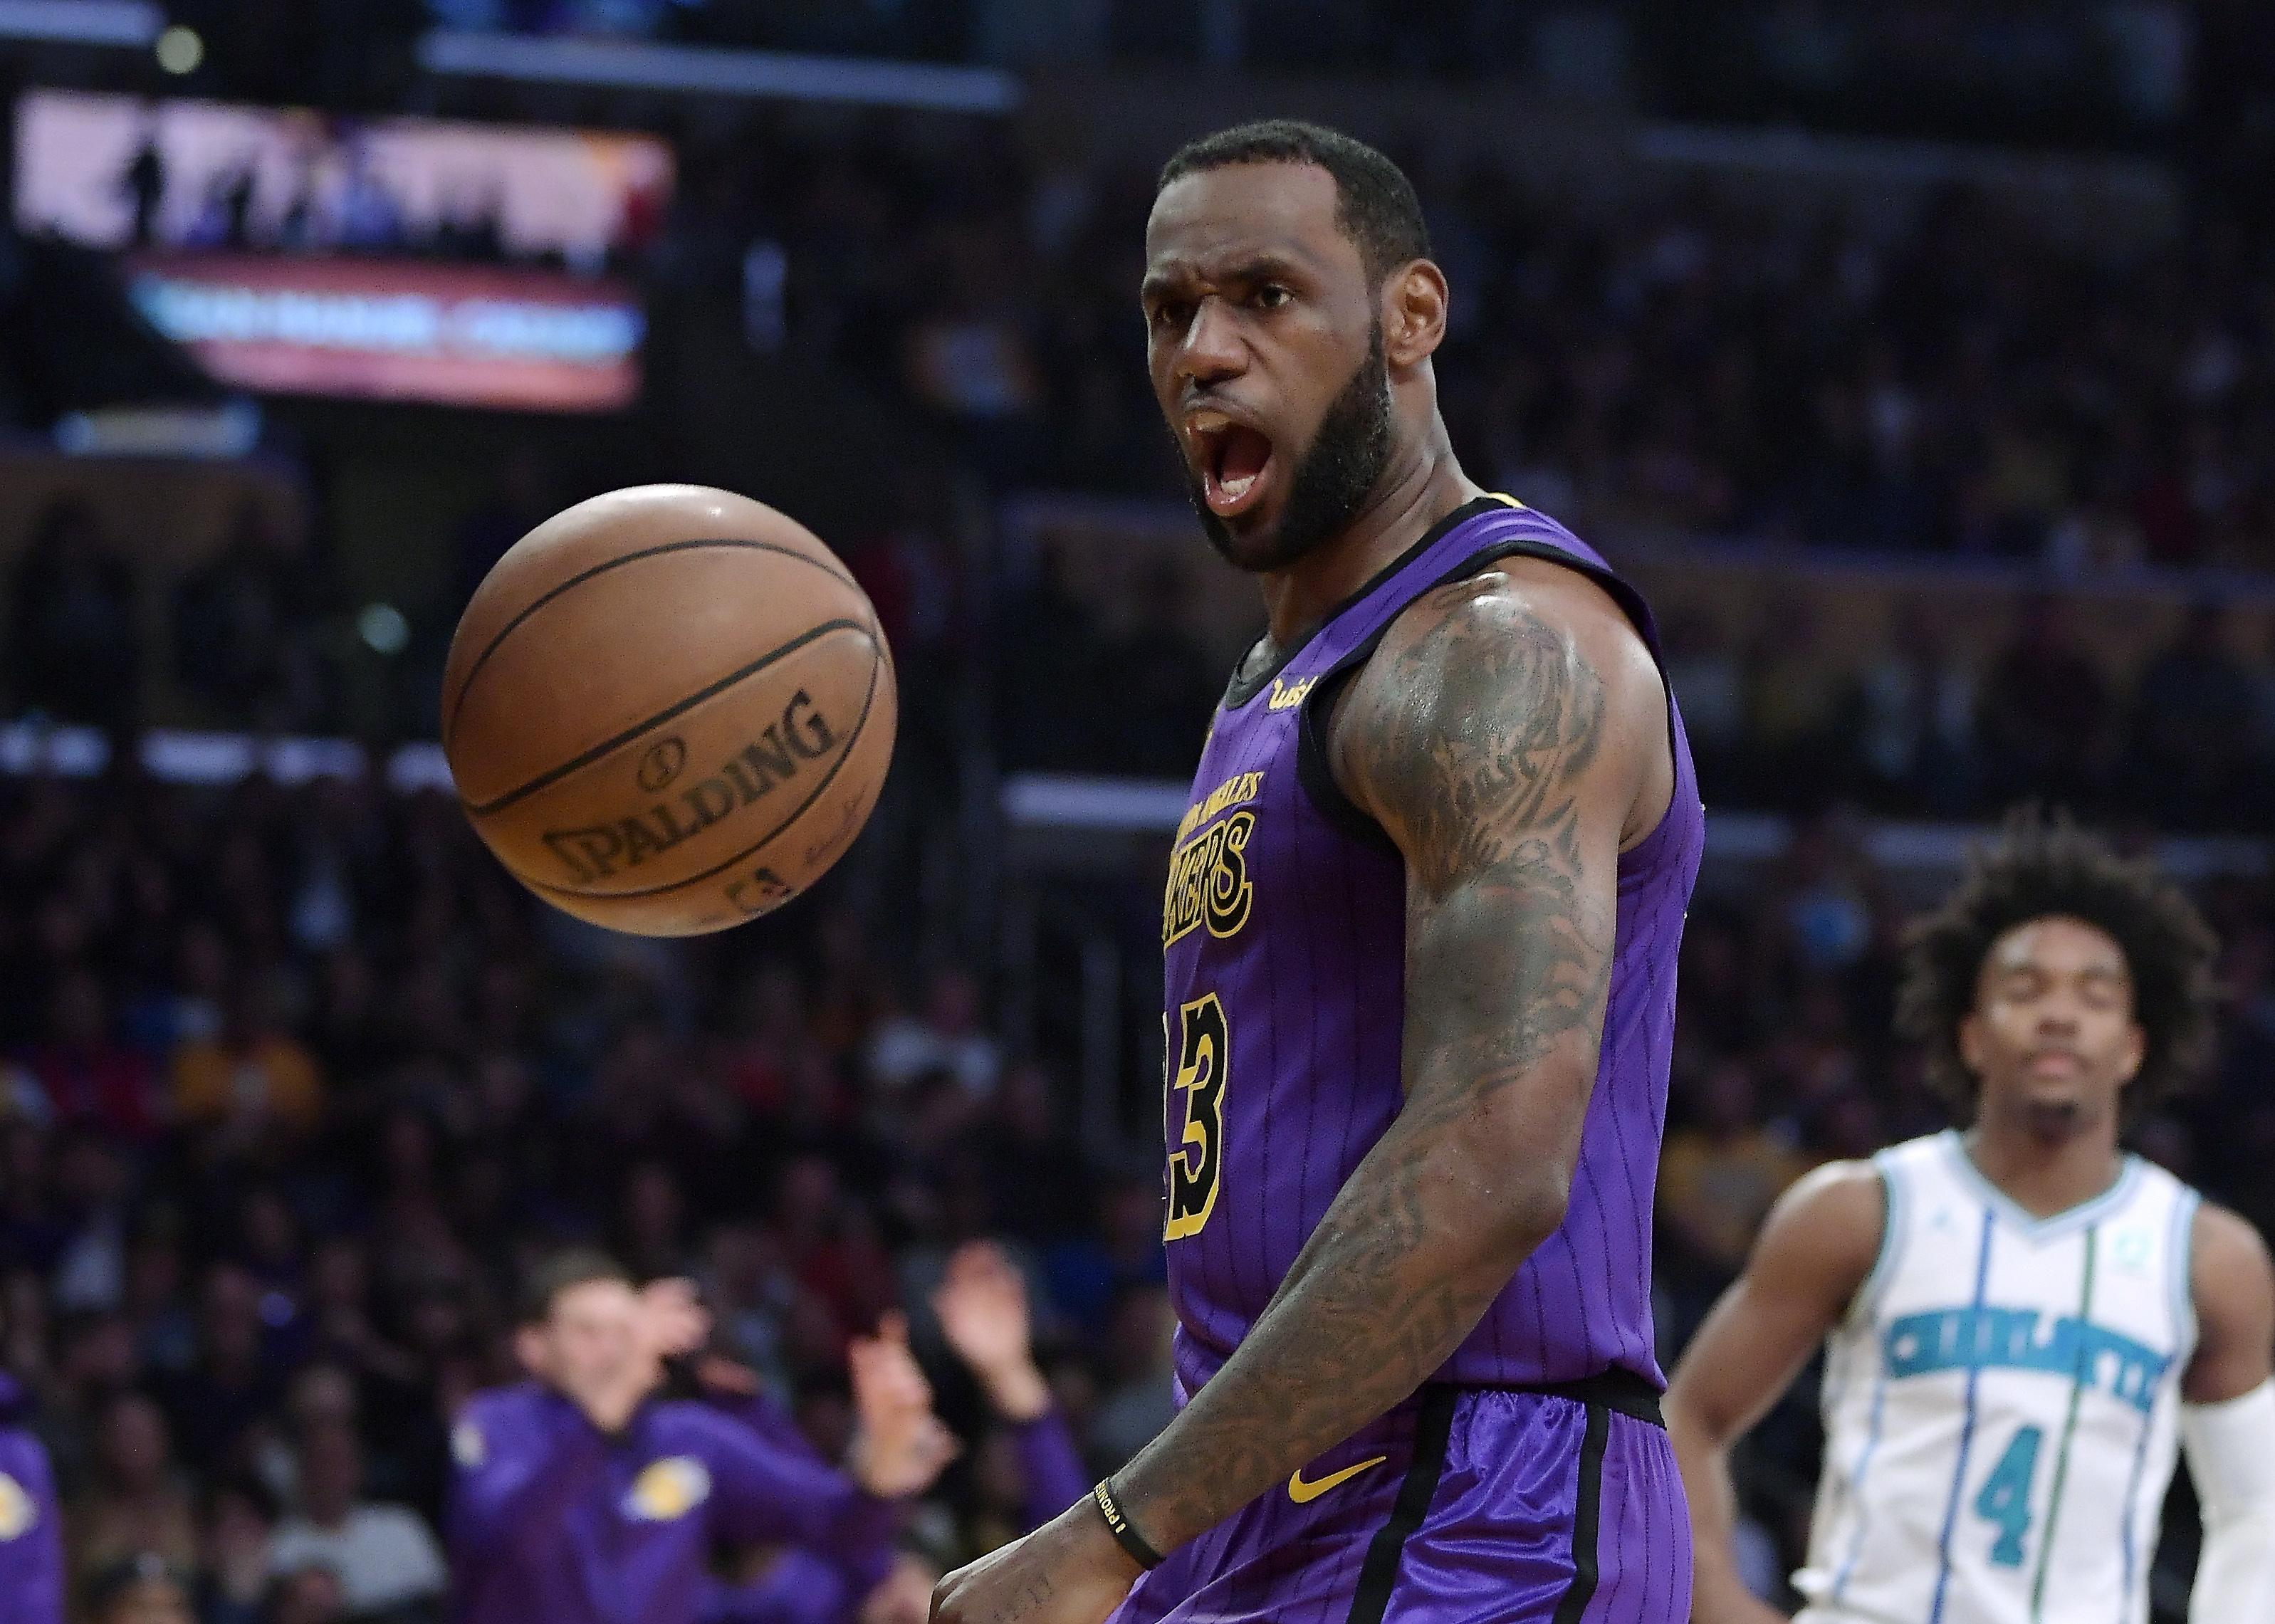 f226e0779c41 Los Angeles Lakers forward LeBron James won t play anymore this season. The  Lakers